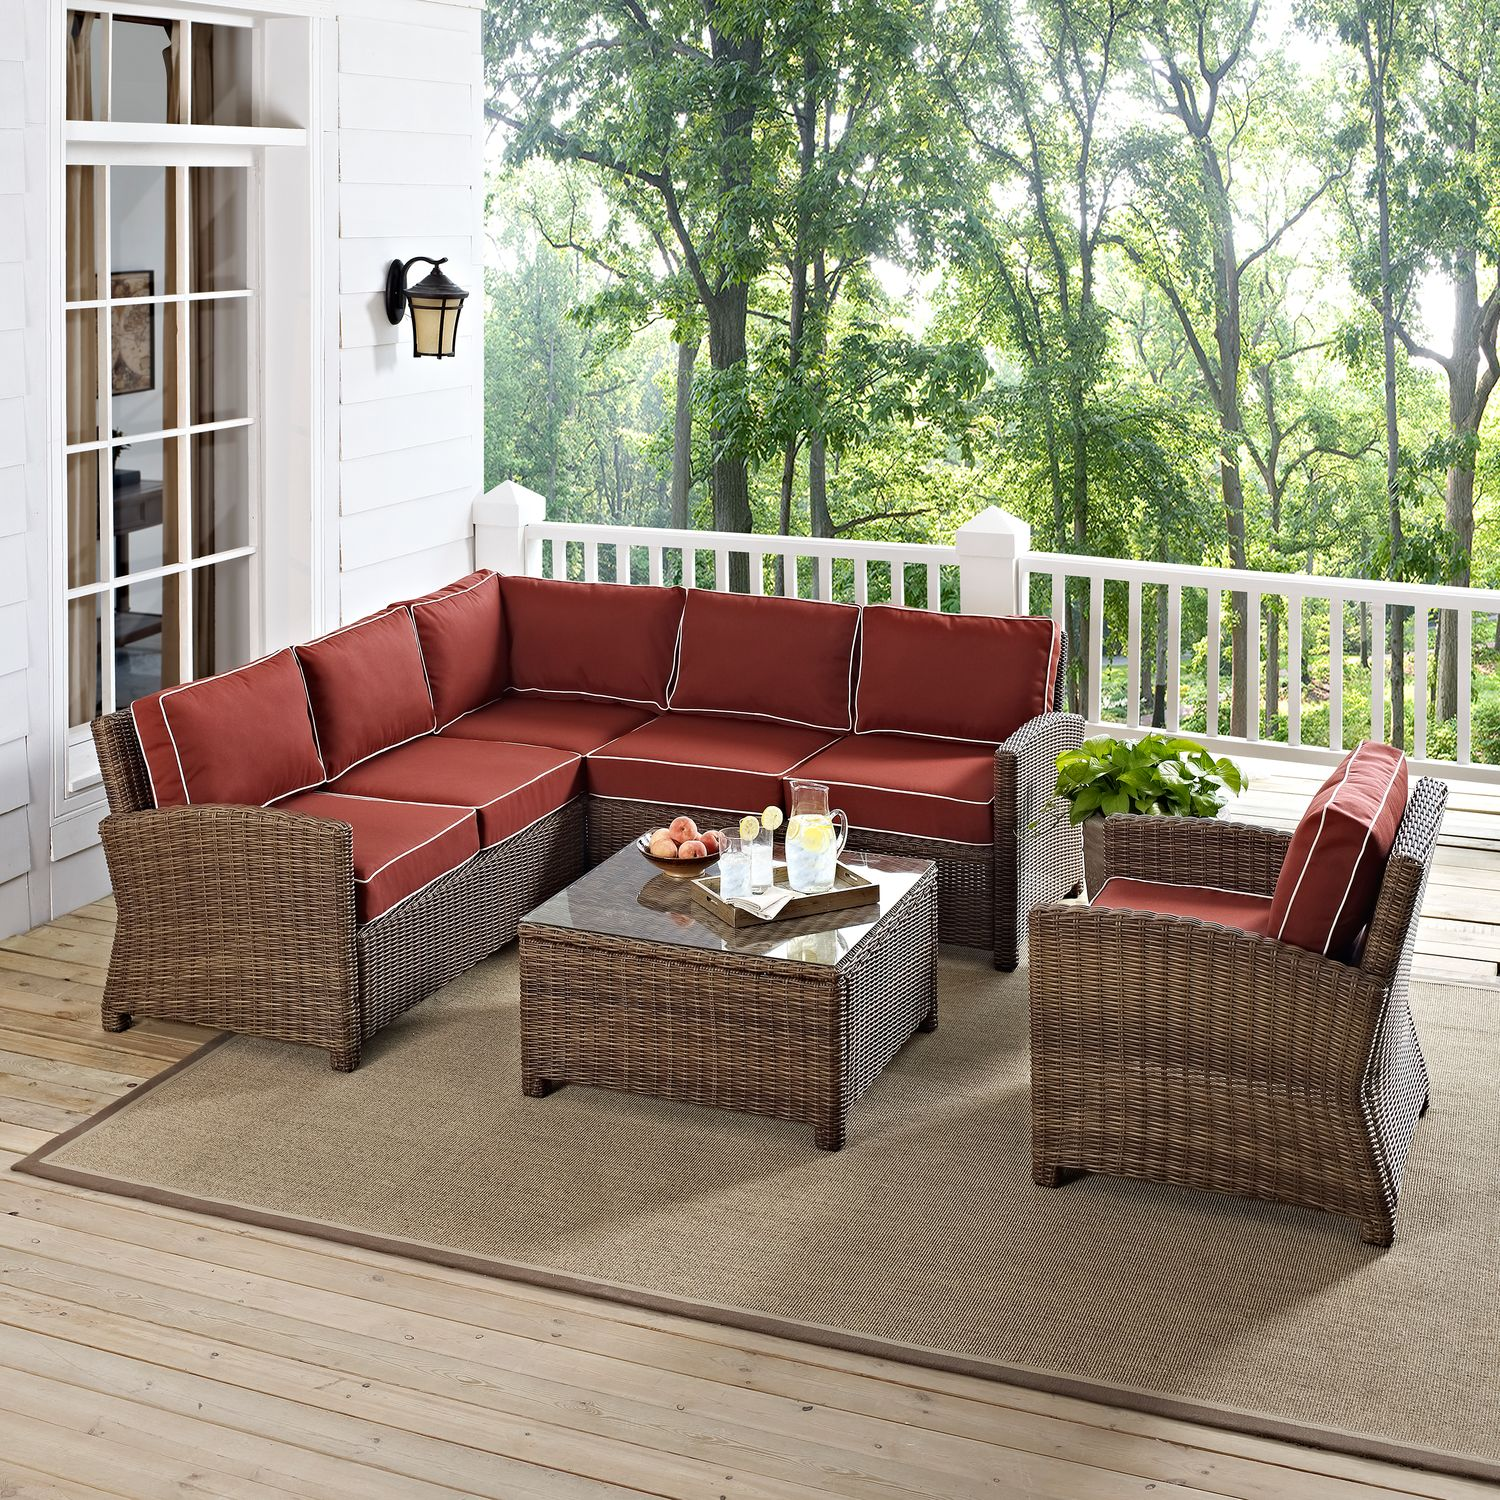 Patio Furniture Repair Destin Fl: Destin 3-Piece Outdoor Sectional, Chair And Cocktail Table